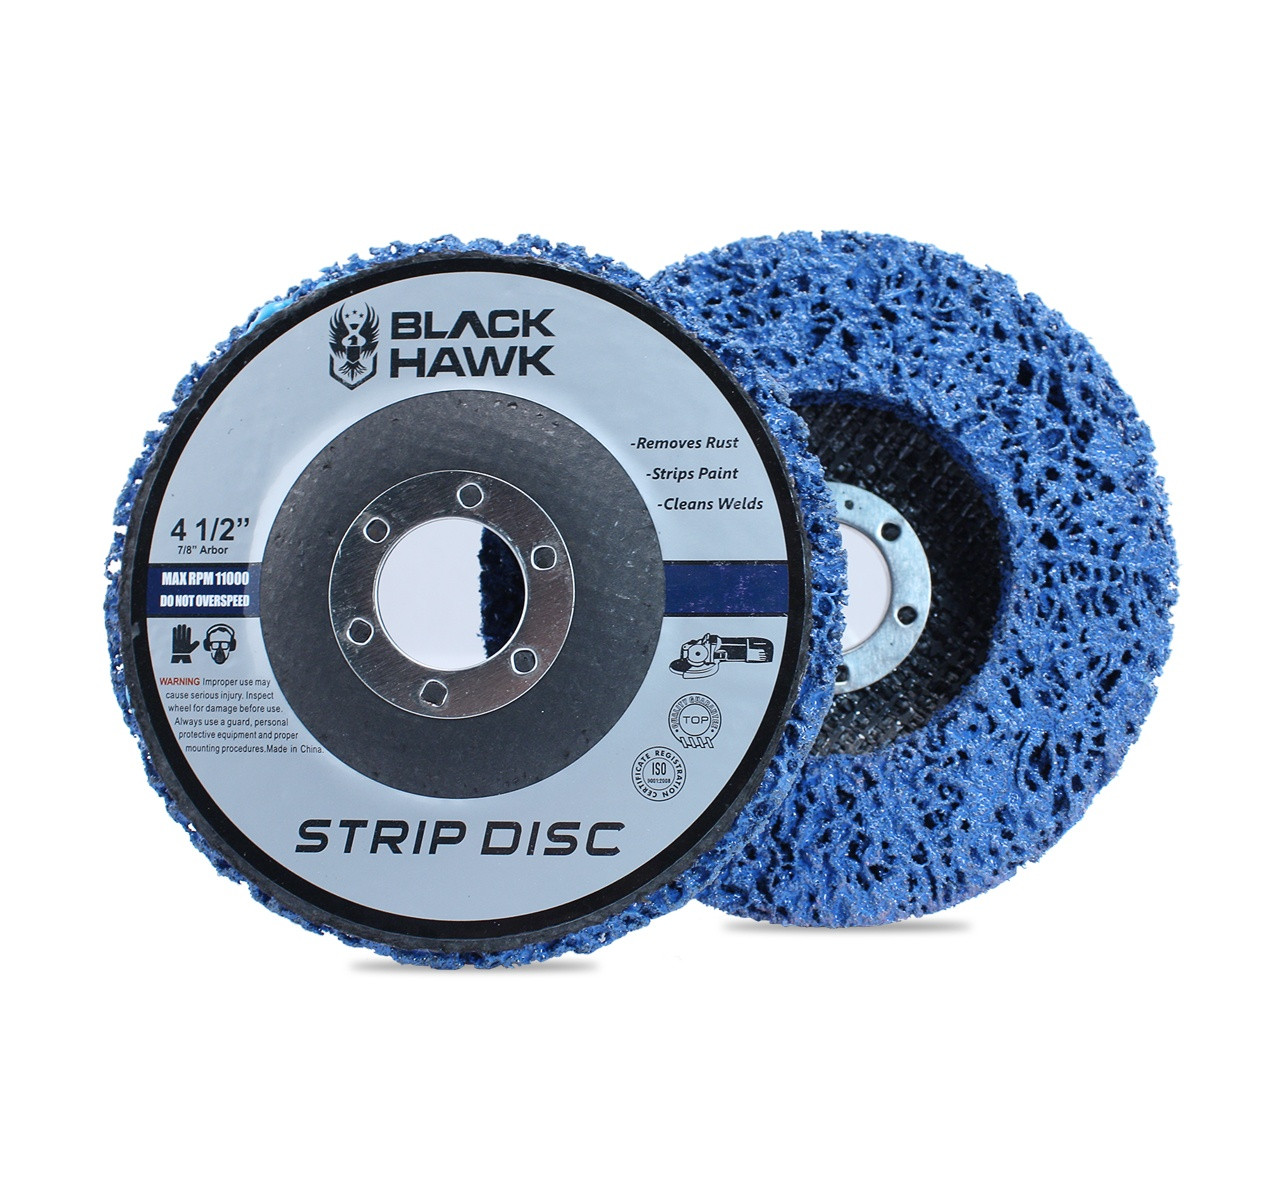 home sanding discs surface conditioning 4 1 2 x 7 8 easy strip an. Black Bedroom Furniture Sets. Home Design Ideas